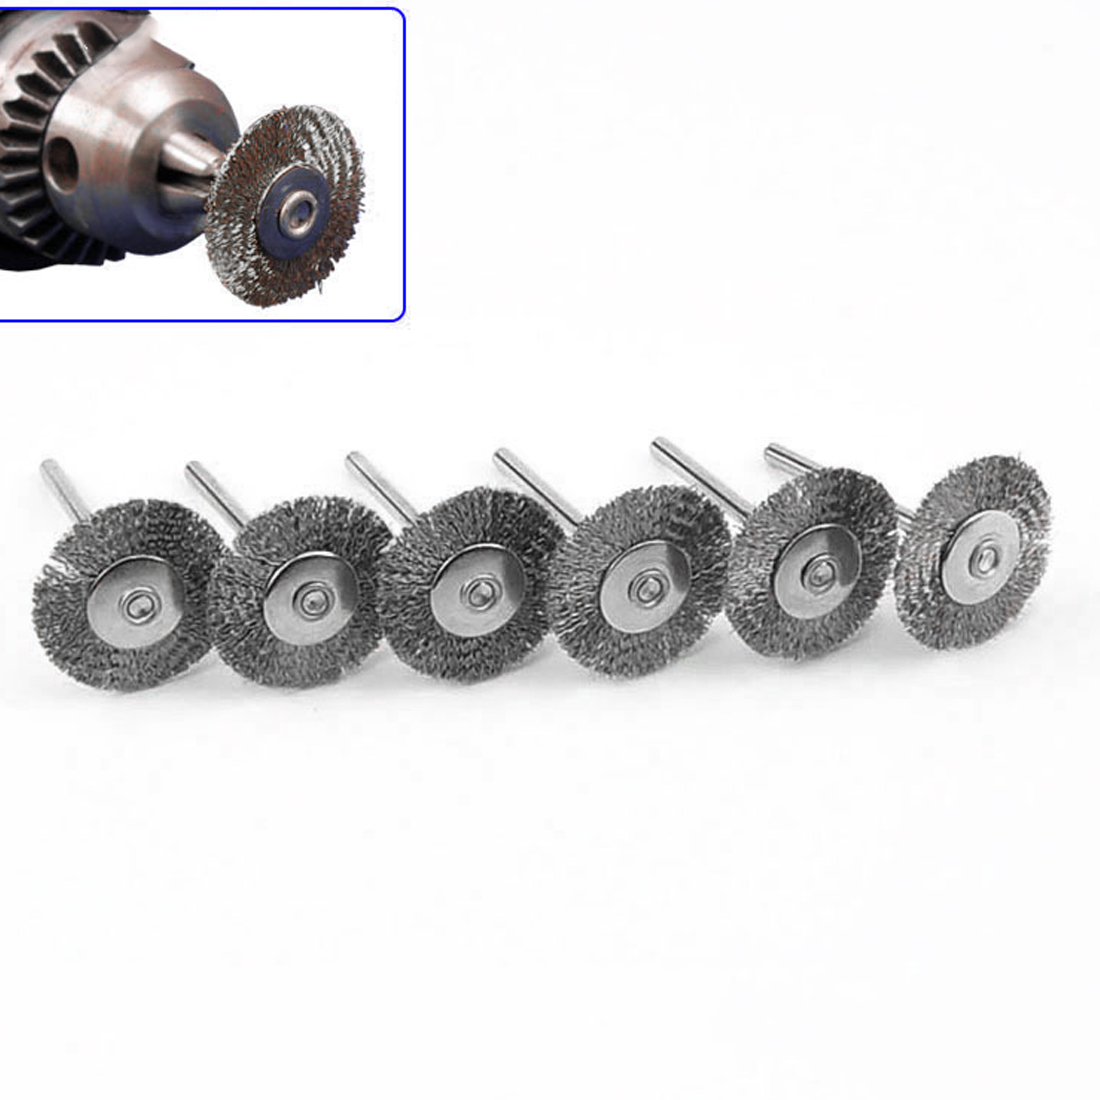 Hot 10Pcs Dremel Accessories 22mm Steel Rotary Brush Dremel Wire Wheel Brushes for Grinder Rotary Tool for Mini Drill Polishing free shipping 10pcs polishing wheel 1 buffing pad dremel accessories for rotary tool green